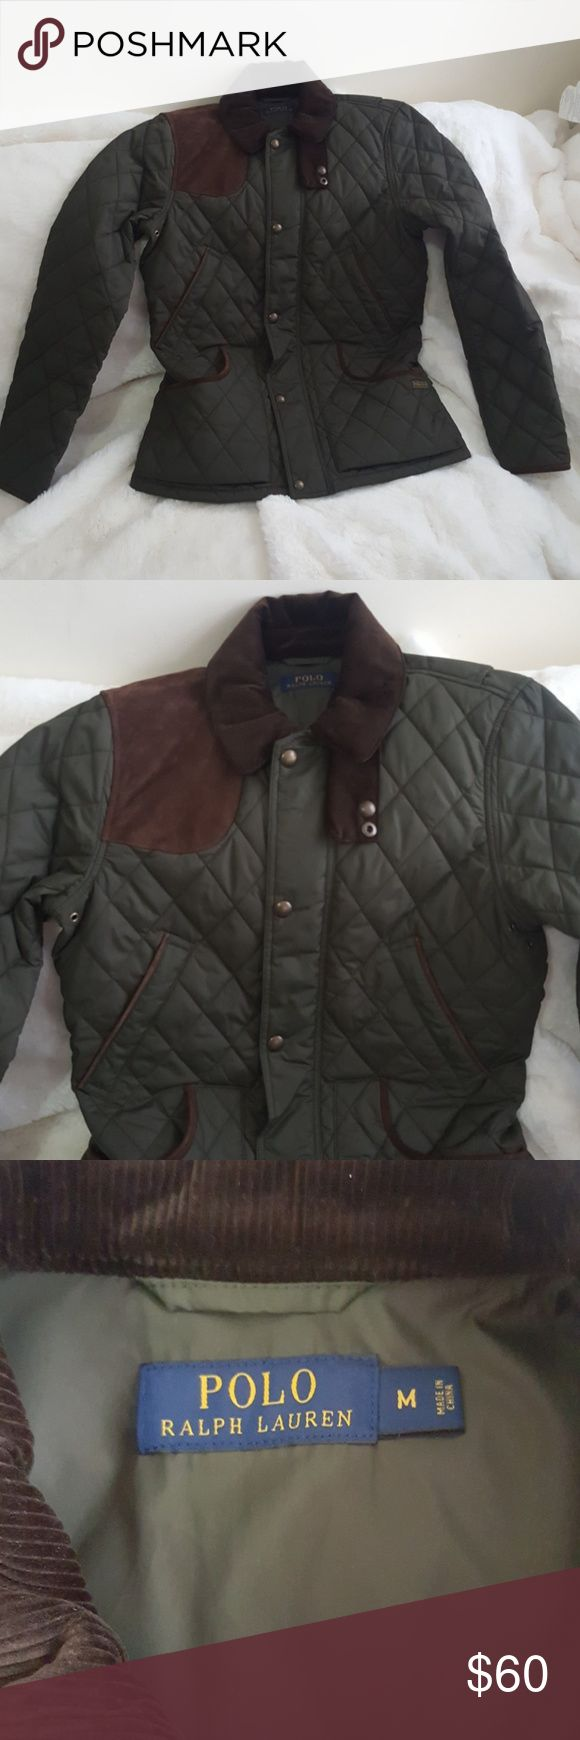 Ralph Lauren Polo Jacket Quilted Ralph Lauren Polo Jacket  never wore great condition Polo by Ralph Lauren Jackets & Coats